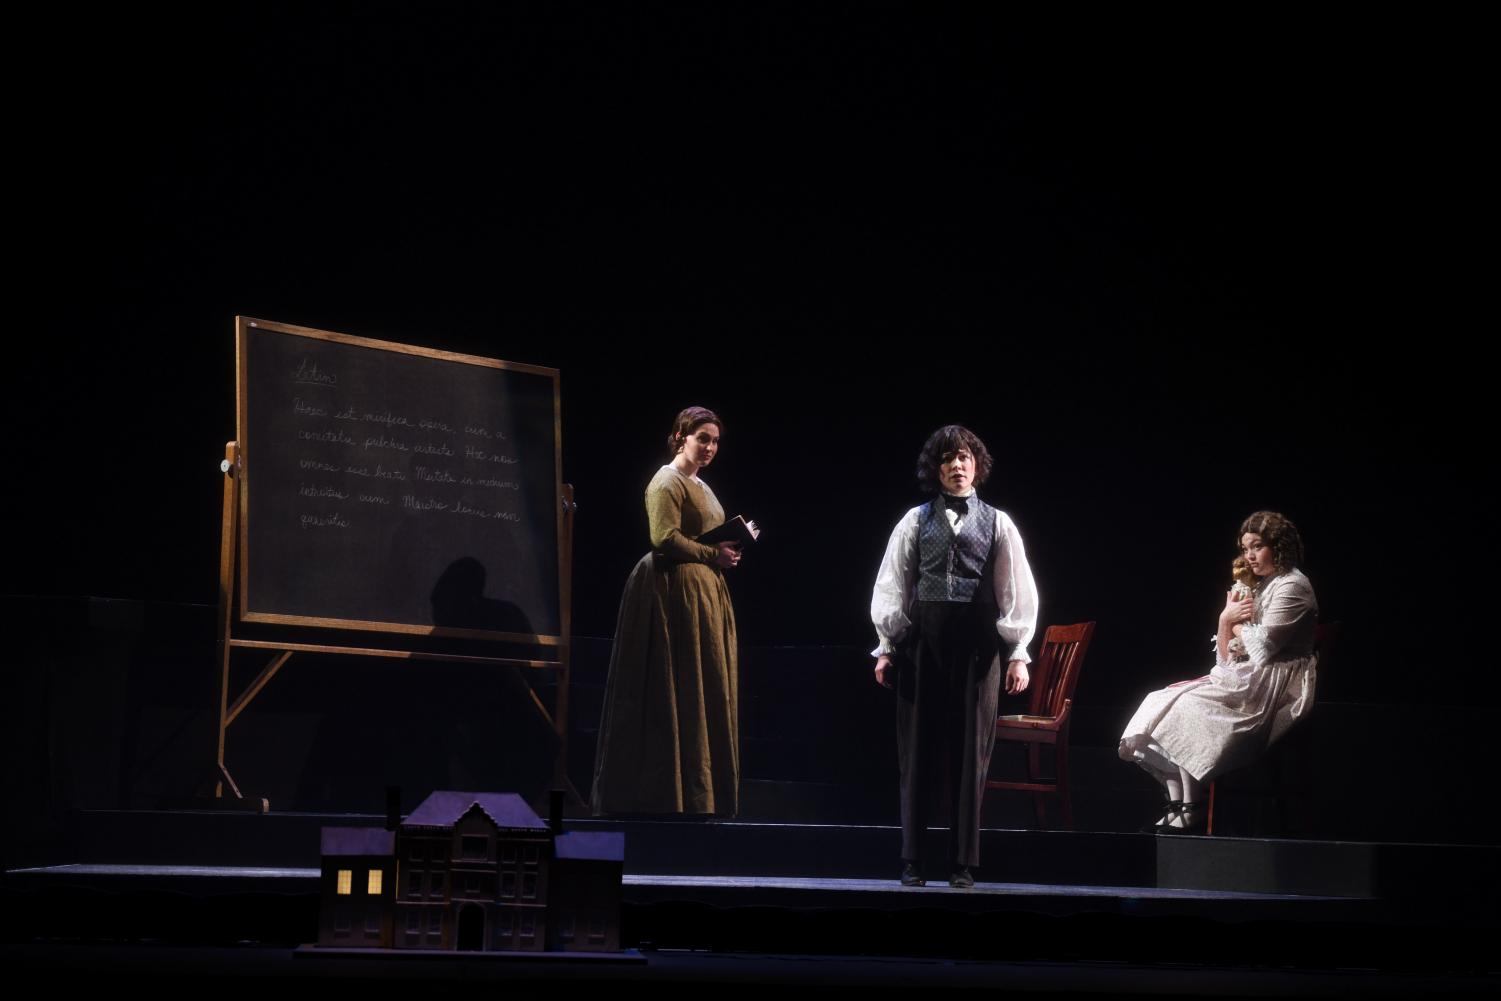 The cast of the Oberlin Opera Theater's production of The Turn Of The Screw performs Benjamin Britten's creepy, contemporary ghost story opera.